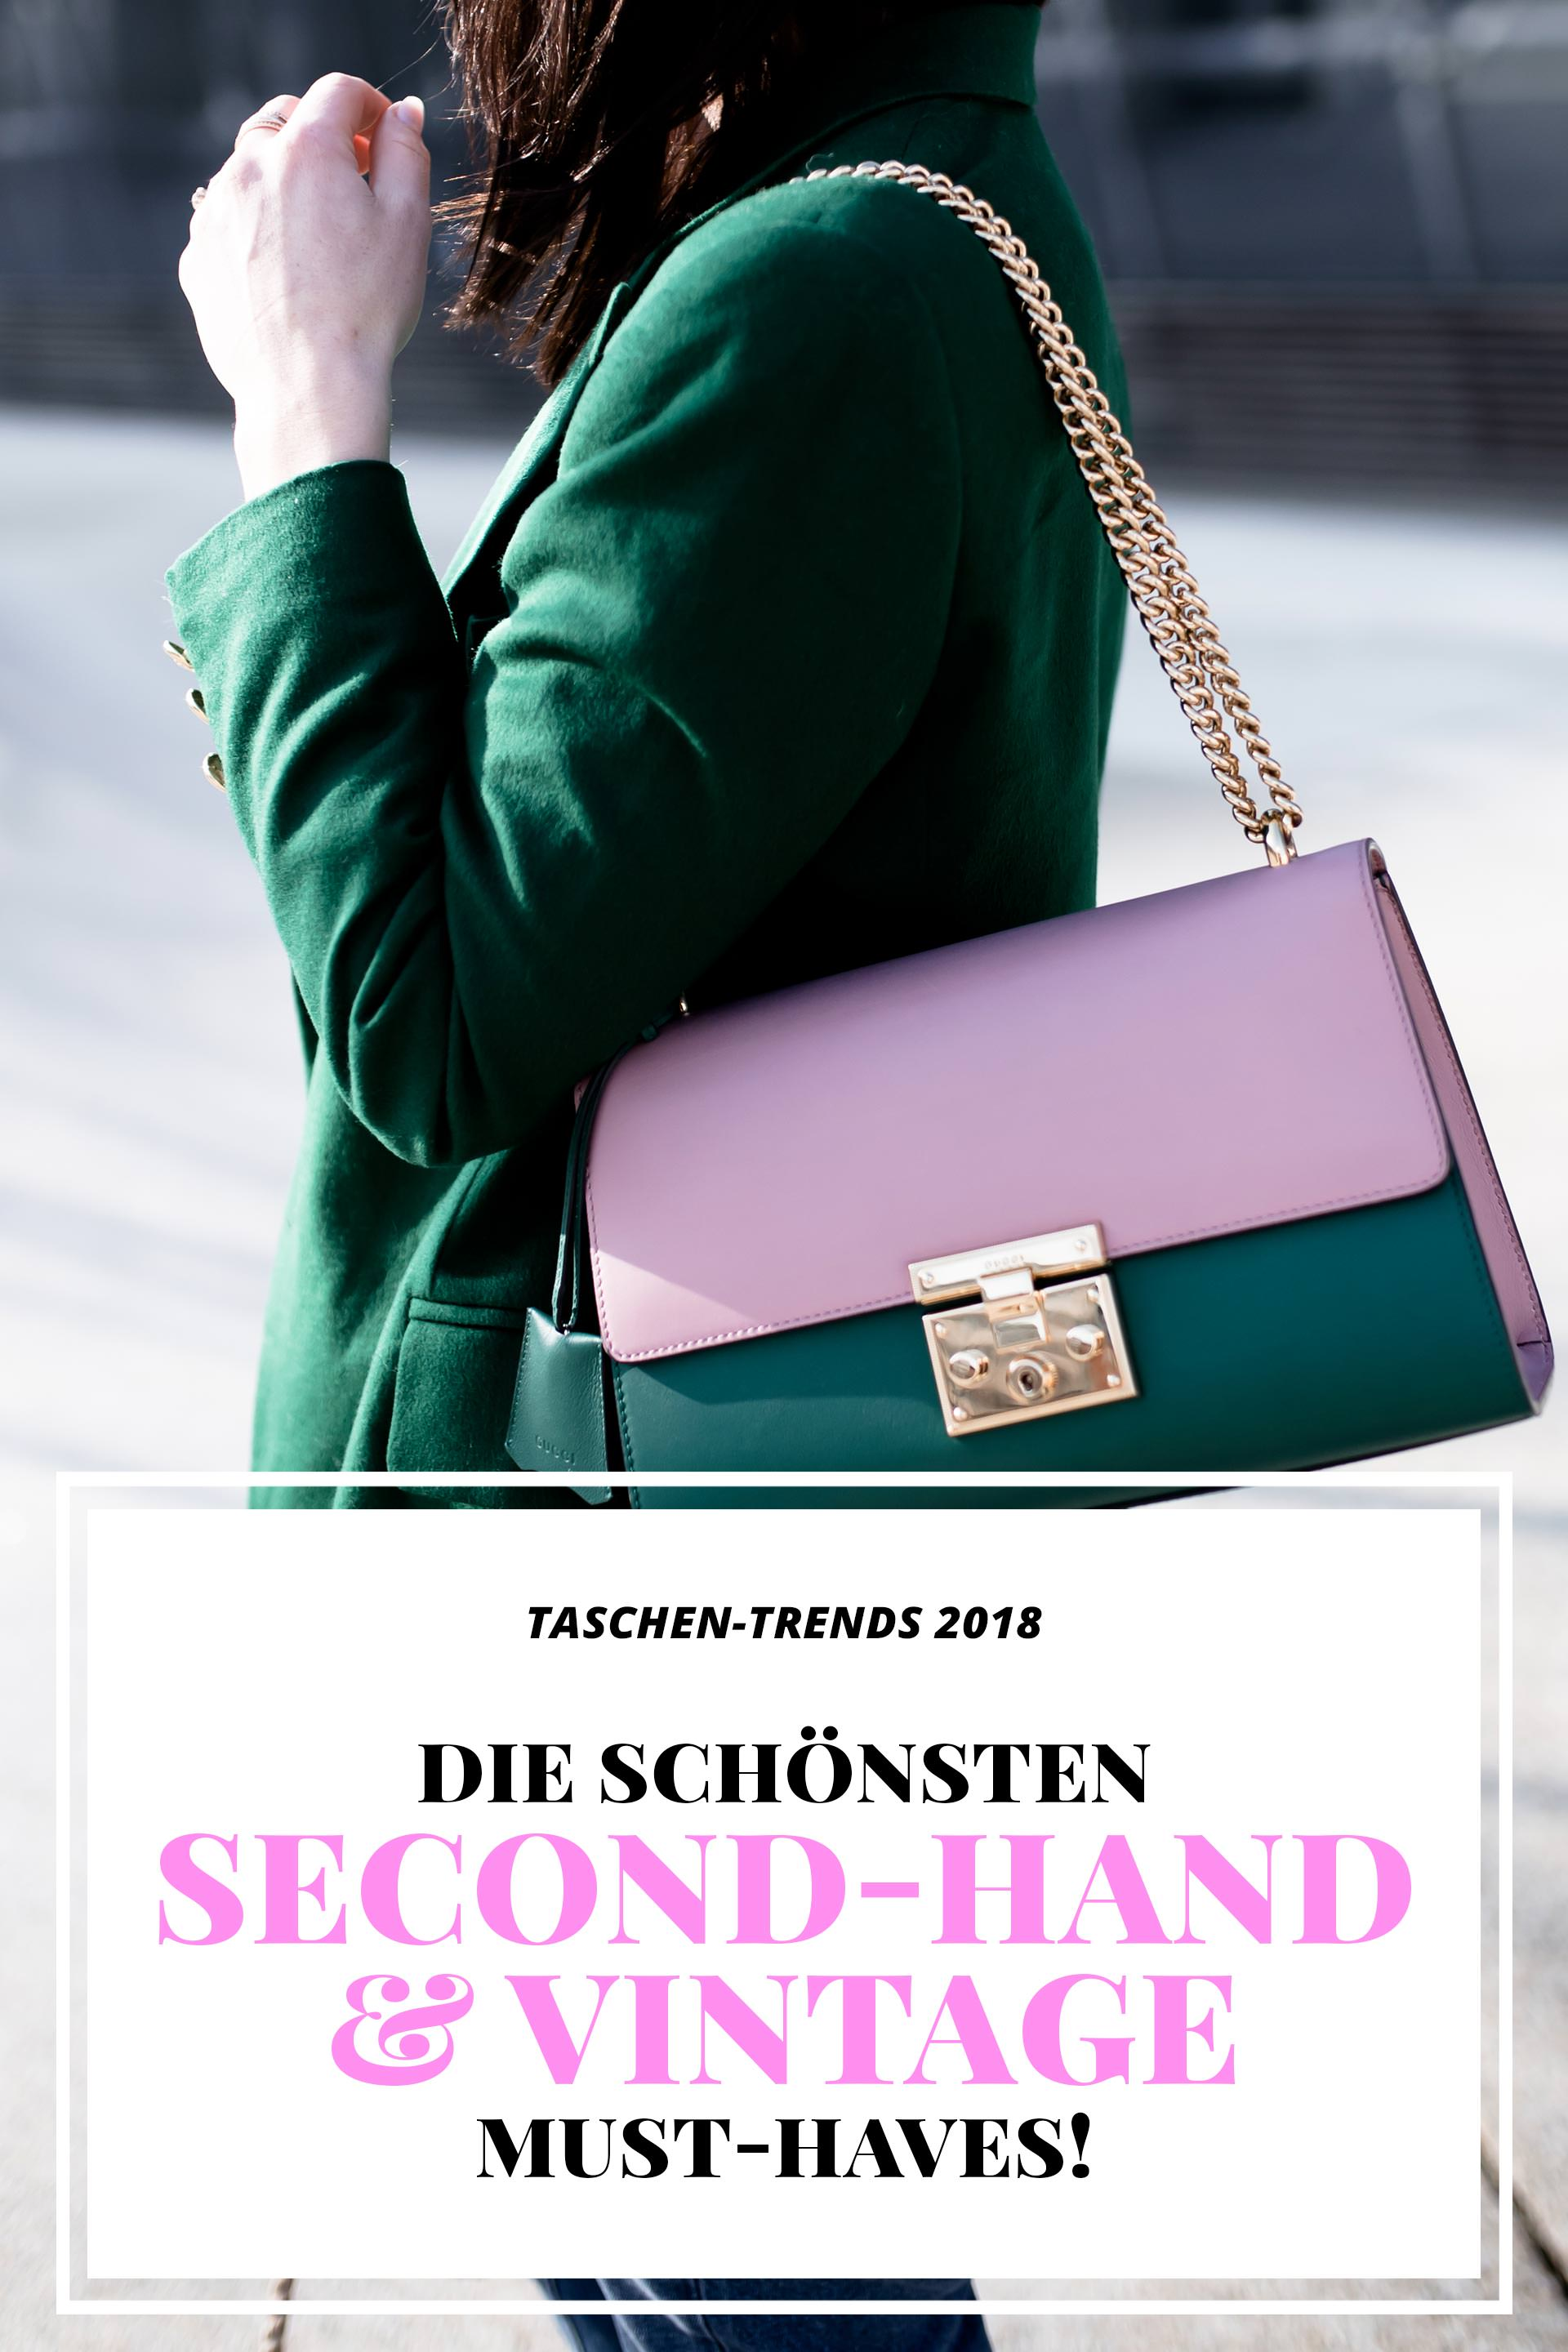 taschen trends 2018 die sch nsten second hand und vintage must haves. Black Bedroom Furniture Sets. Home Design Ideas